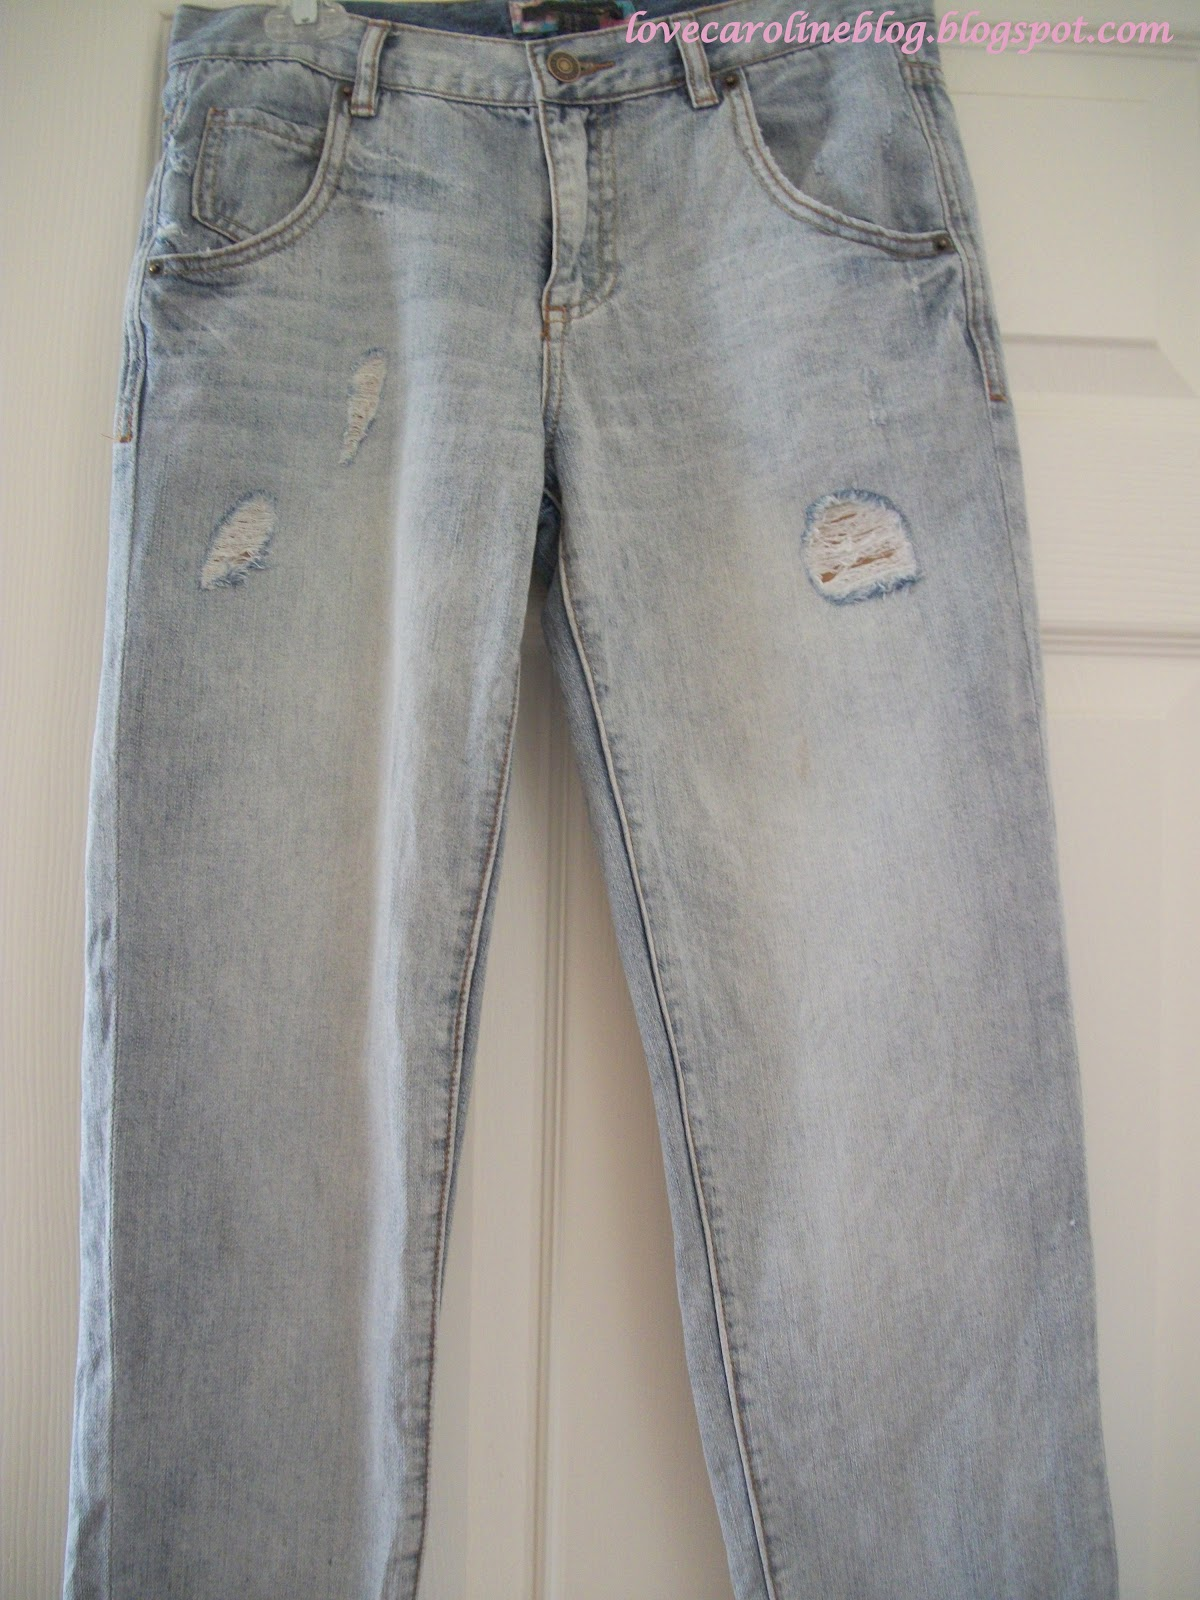 Love Caroline Blog DIY Patched Jeans